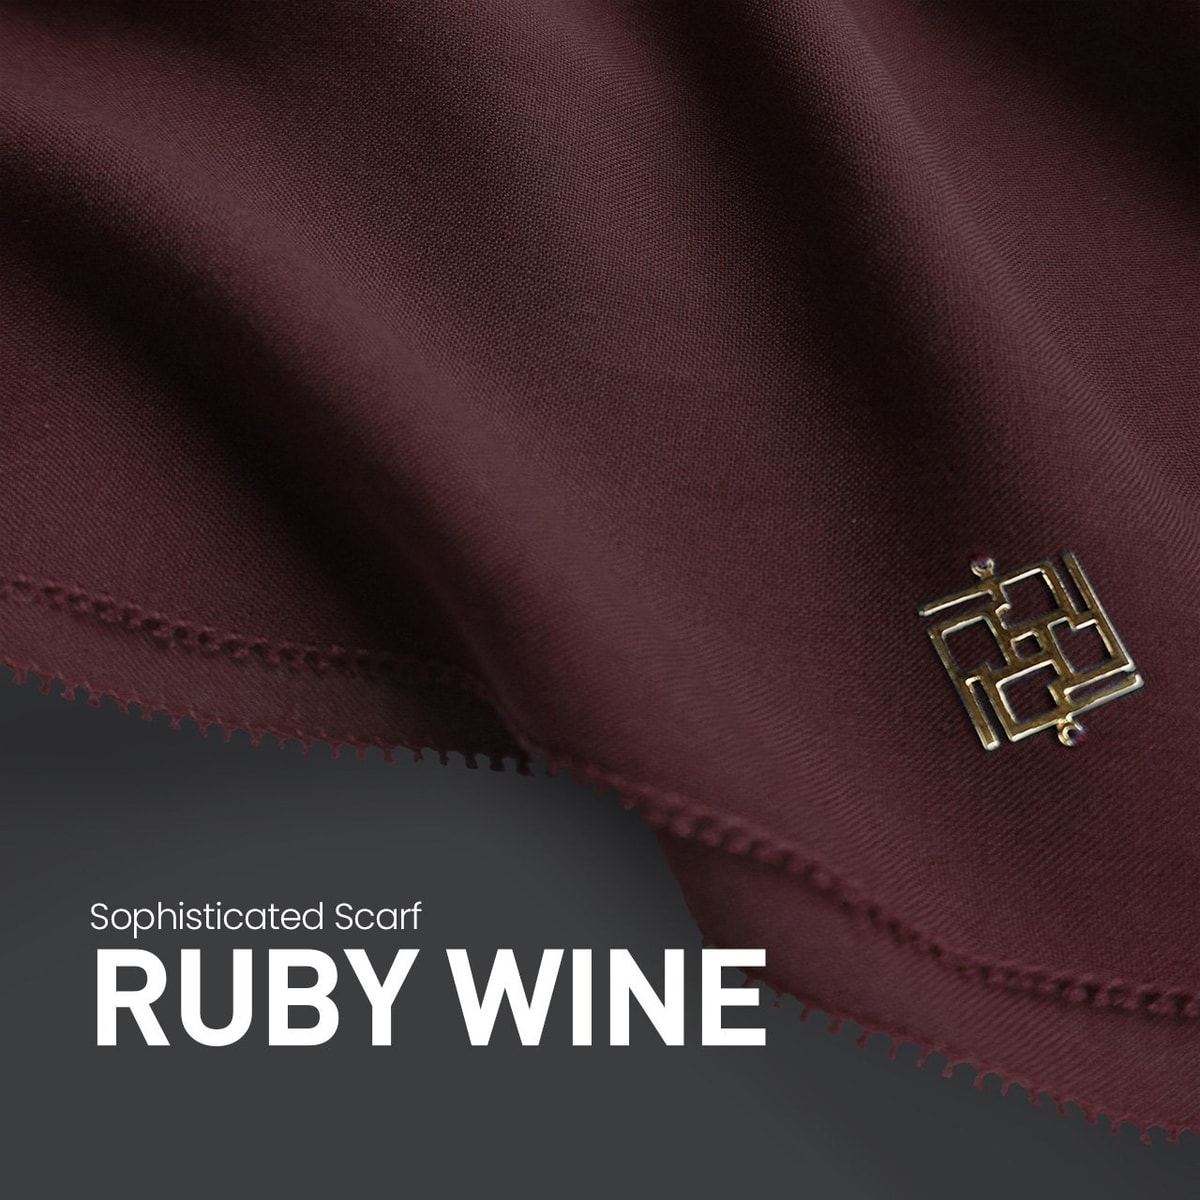 Sophisticated Fringe Ruby Wine